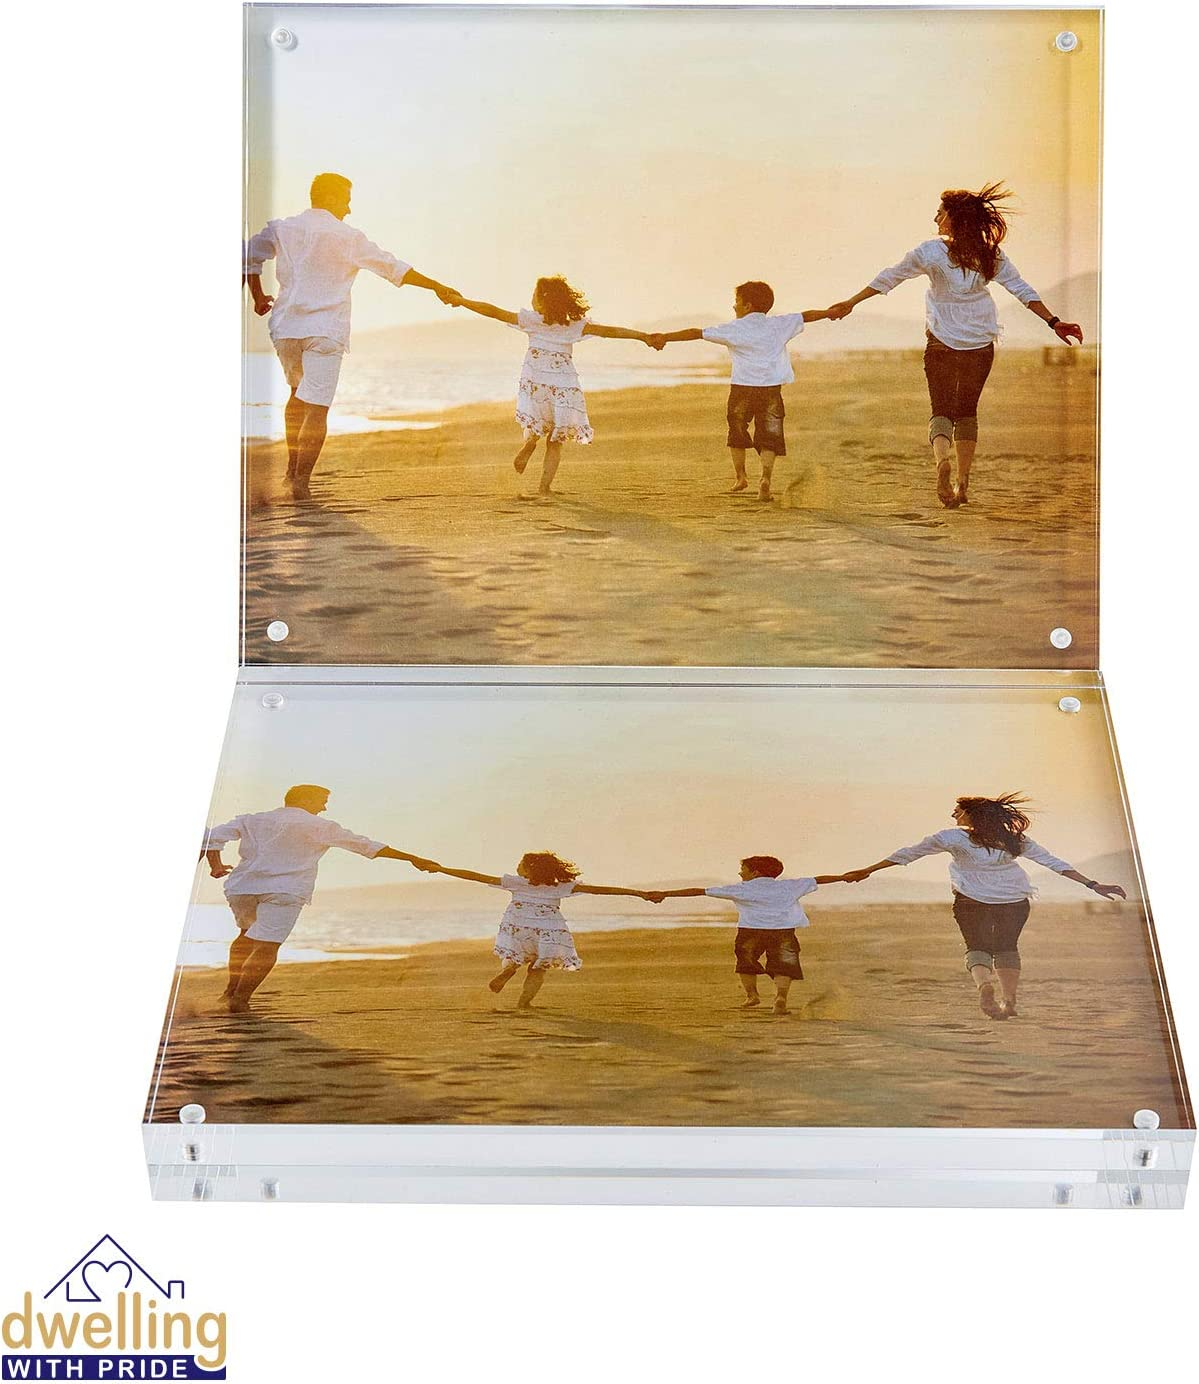 Dwelling With Pride Acrylic Picture Frame Set of 2-8x10 Inch - Acrylic Photo Frame - Collage Stand for Family Photographs - Clear Picture Frames for Office Desk & Side Table - Wedding Table Décor